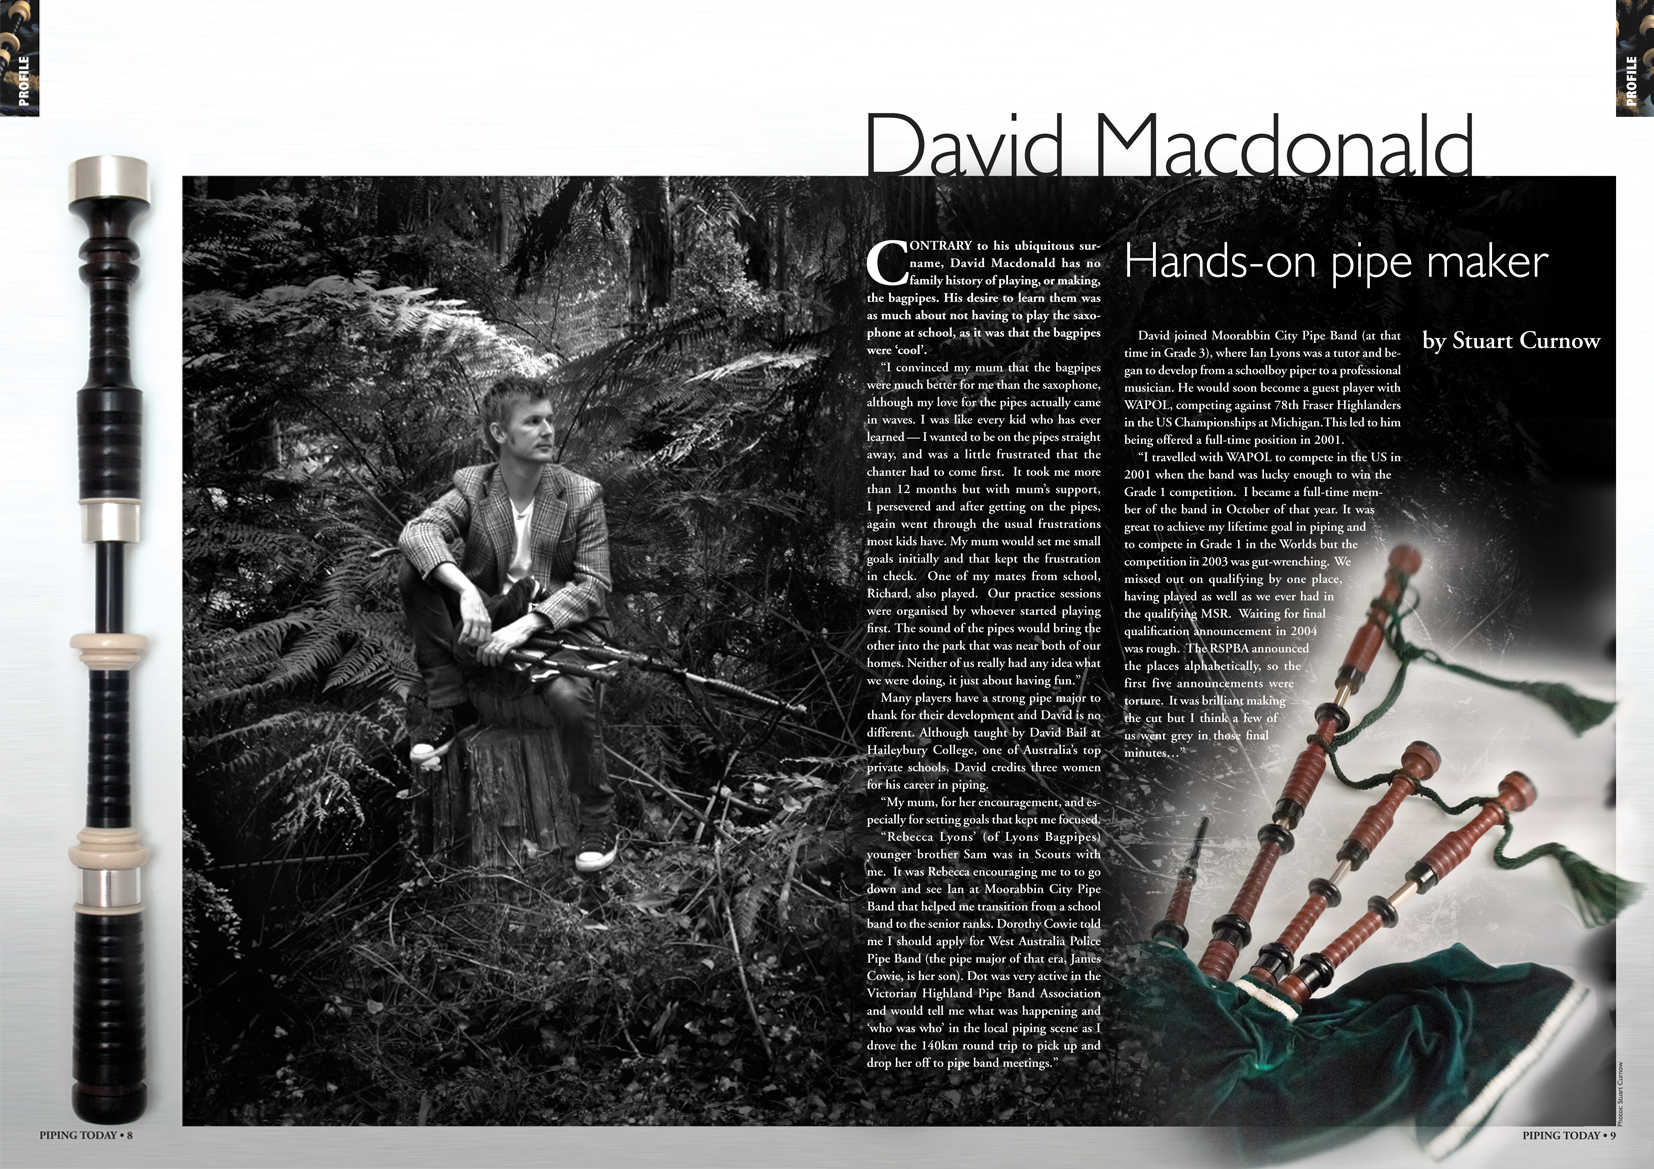 """Contrary to his ubiquitous surname, David Macdonald has no family history of playing, or making, the bagpipes.   His desire to learn them was as much about not having to play the saxophone at school, as it was that the bagpipes were 'cool'.    """"I convinced my Mum that the bagpipes were much better for me than the saxophone, although my love for the pipes actually came in waves.   I was like every kid who has ever learned - I wanted to be on the pipes straight away, and was a little frustrated that the chanter had to come first.   It took me more than 12 months, but with Mum's support, I persevered and after getting on the pipes, again went through the usual frustrations most kids have. My Mum would set me small goals initially and that kept the frustration in check.   One of my mates from school, Richard, also played.   Our practice sessions were organised by who ever started playing first.   The sound of the pipes would bring the other into the park that was near both of our homes.   Neither of us really had any idea what we were doing, it just about having fun.""""    Many pipers have a strong pipe major to thank for their development, and David is no different. Although taught by David Bail at Haileybury College, one of Australia's top private schools, David credits three women for his career in piping.    """"I actually have three strong women to thank for my piping career. My Mum, for her encouragement, especially for setting goals for me that kept me focussed.    Rebecca Lyons' (of Lyons Bagpipes) younger brother Sam was in Scouts with me.   It was Rebecca's encouraging me to to go down and see Ian at Moorabbin City Pipe Band that helped me transition from a school band to the senior ranks.   Dorothy Cowie told me I should apply for West Australia Police Pipe Band (the pipe major of that era, James Cowie, is her son). Dot was very active in the Victorian Highland Pipe Band Association and would tell me what was happening and 'who was who' in the local piping scene a"""